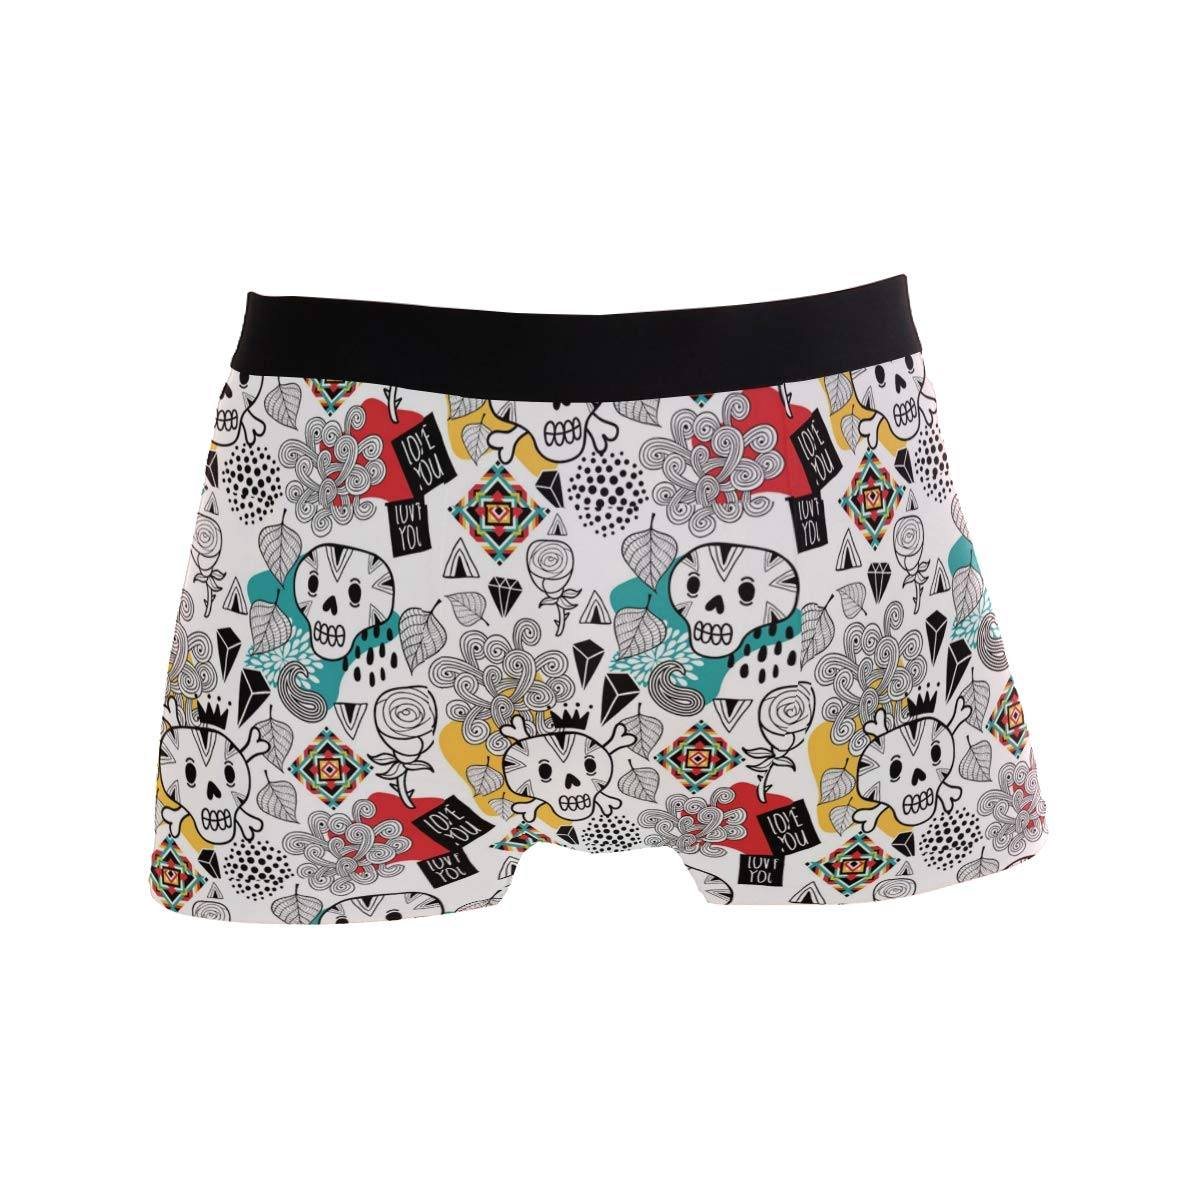 Charlley Lee Mens Soft Breathable Doodle Skulls and Romantic Underwear Boxer Briefs